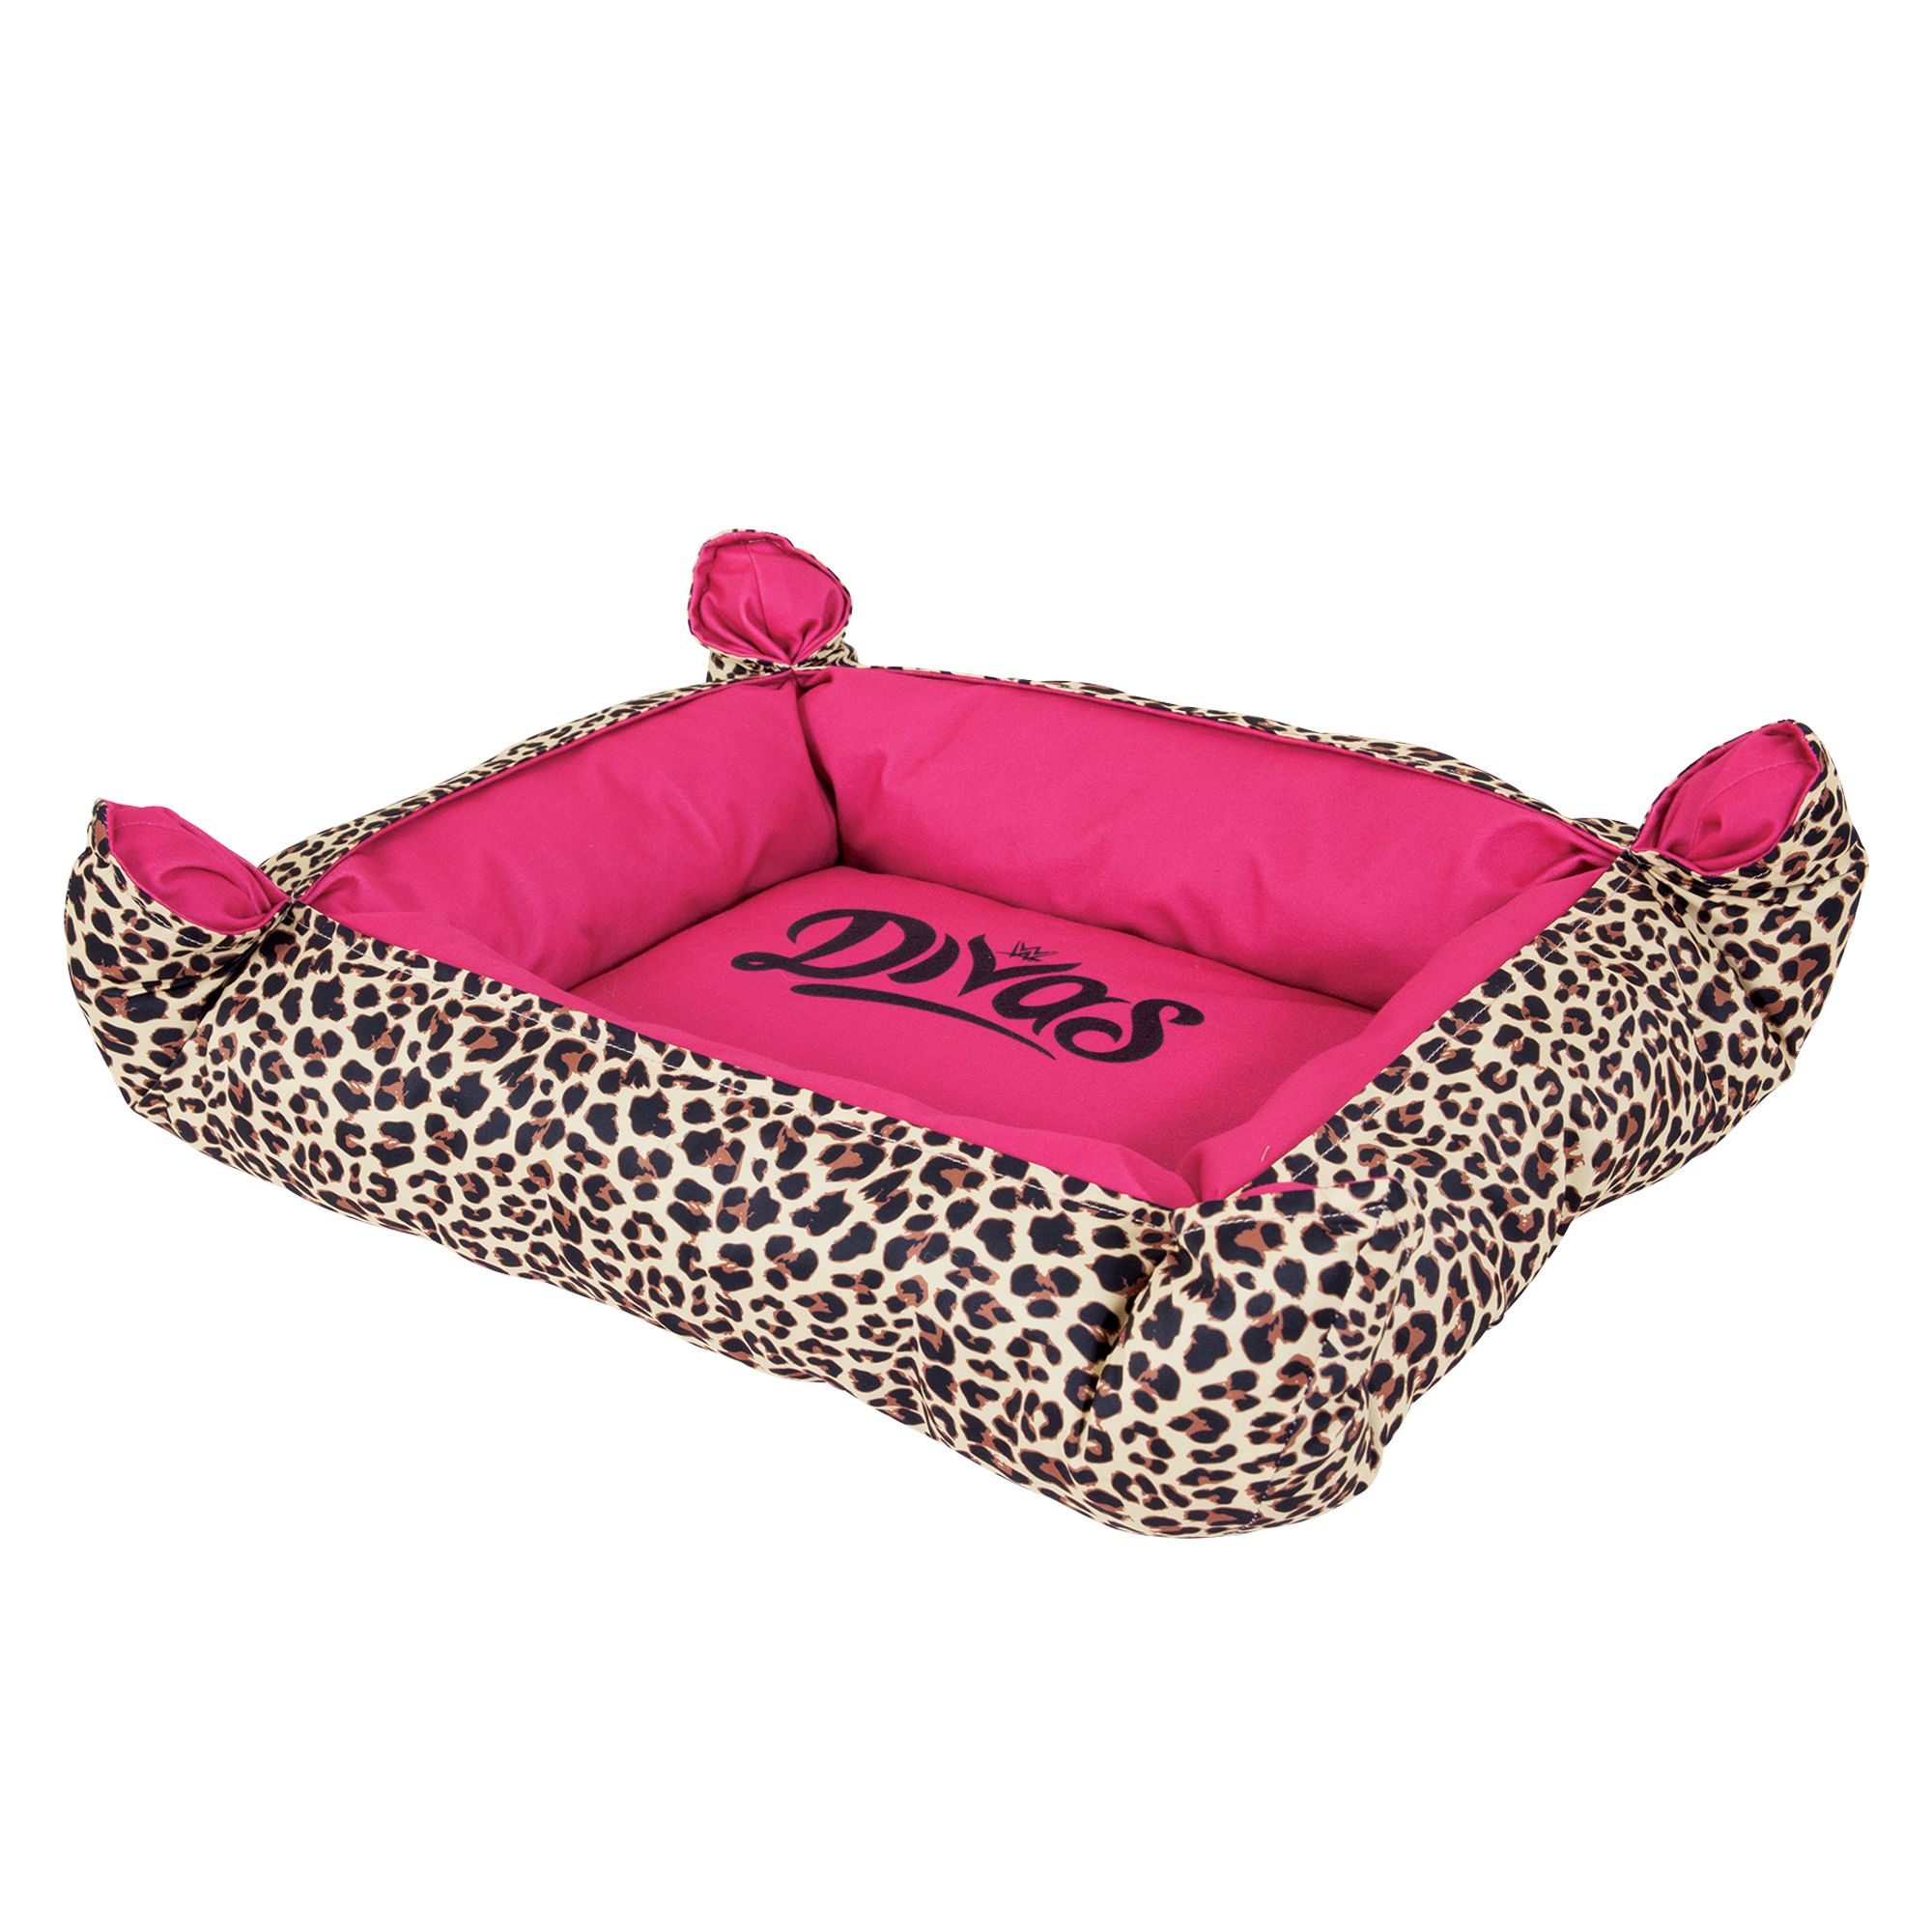 Wwe Diva Pinch Corner Cuddler Dog Bed